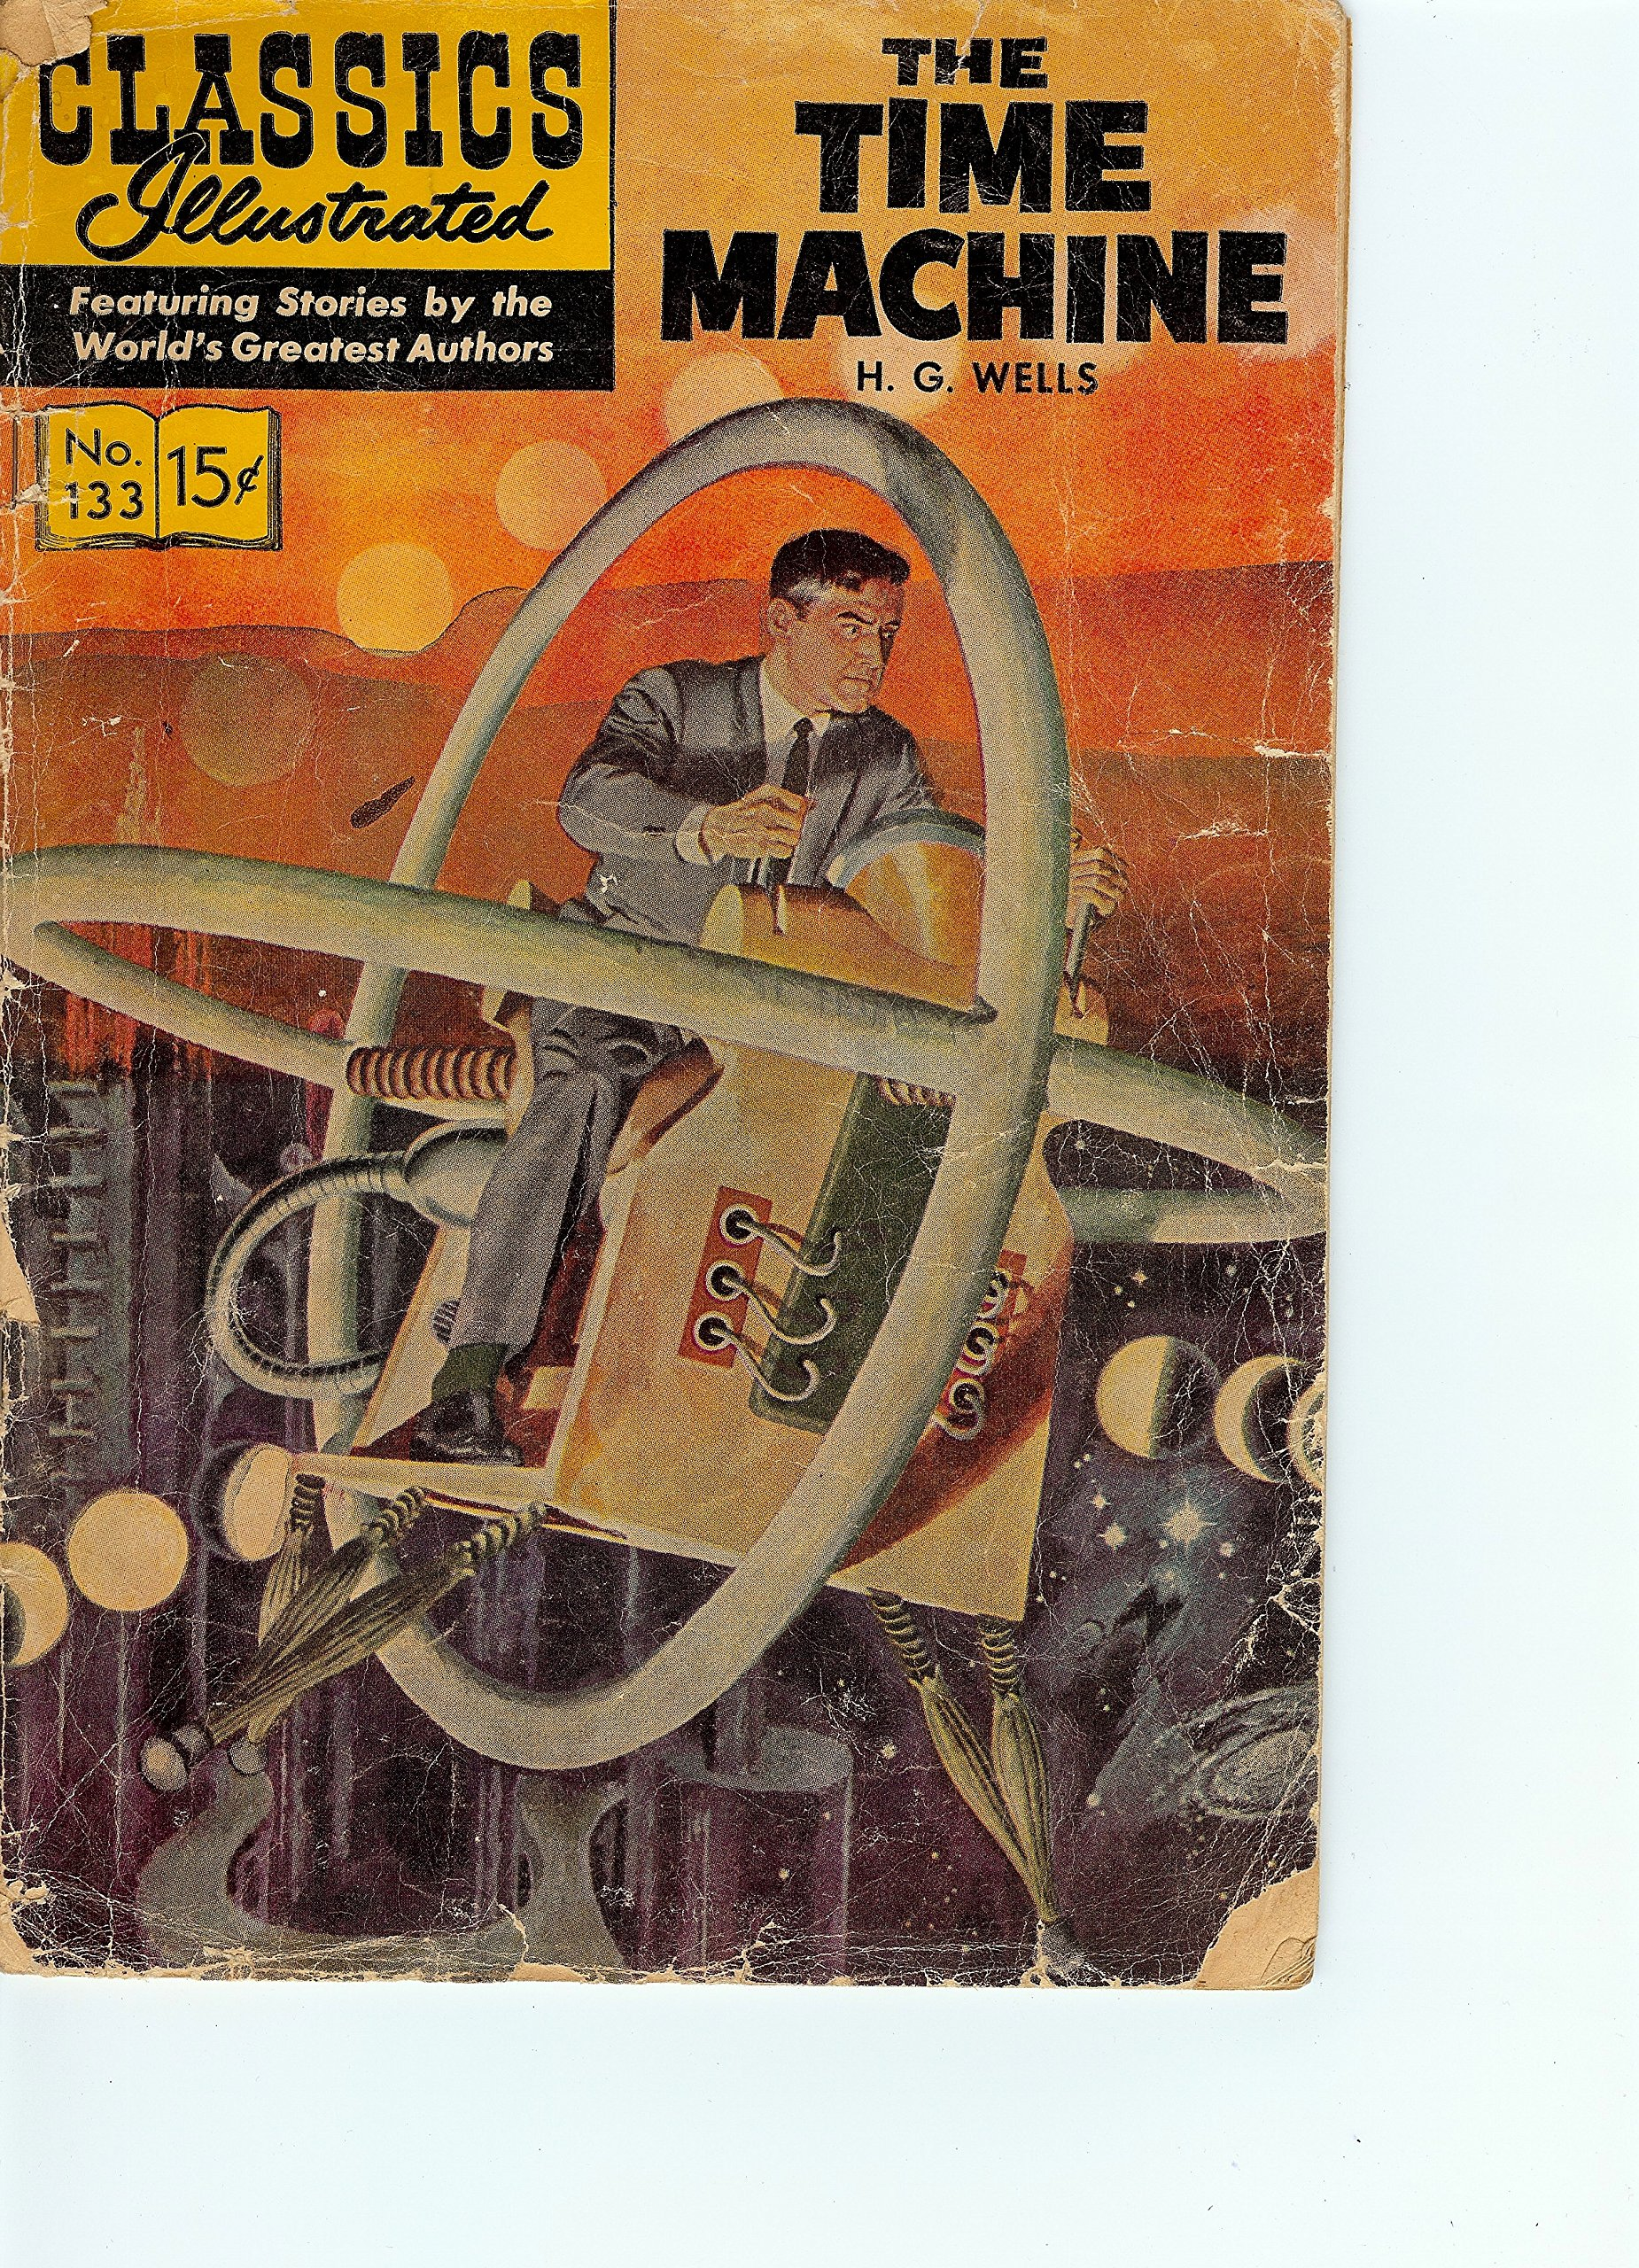 The time machine classics illustrated volume 133 h g wells the time machine classics illustrated volume 133 h g wells william b jones jr 9781894998765 amazon books fandeluxe Gallery